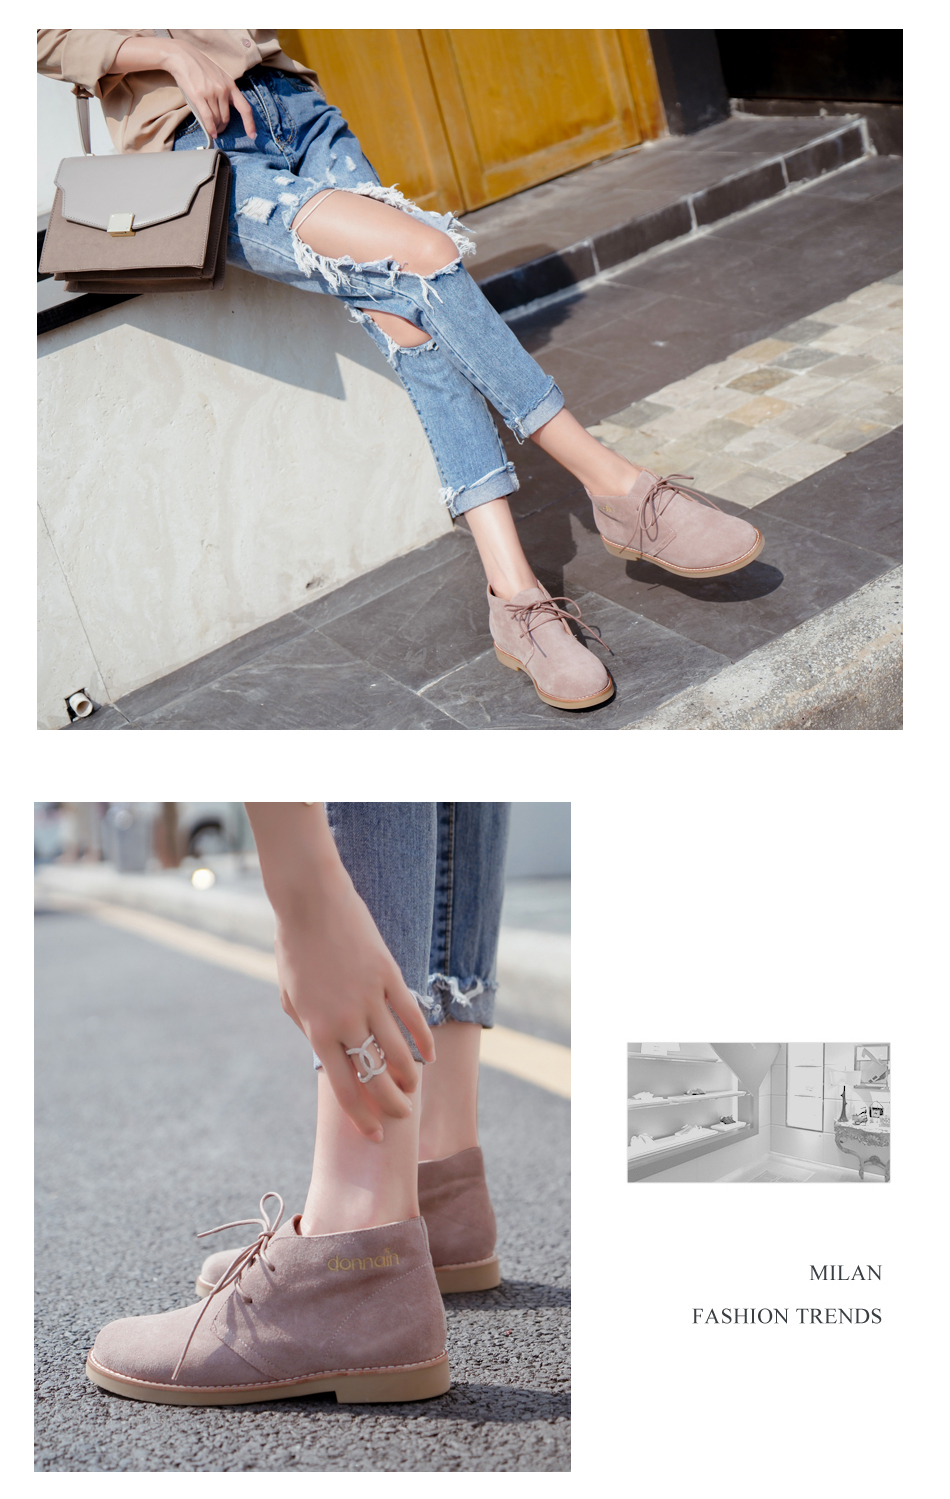 Donna-in Ankle Boots for Women Martin Boots Genuine Leather Shoes Flat Casual Booties Woman 2019 Spring Lace up Plus Size Ladies (3)